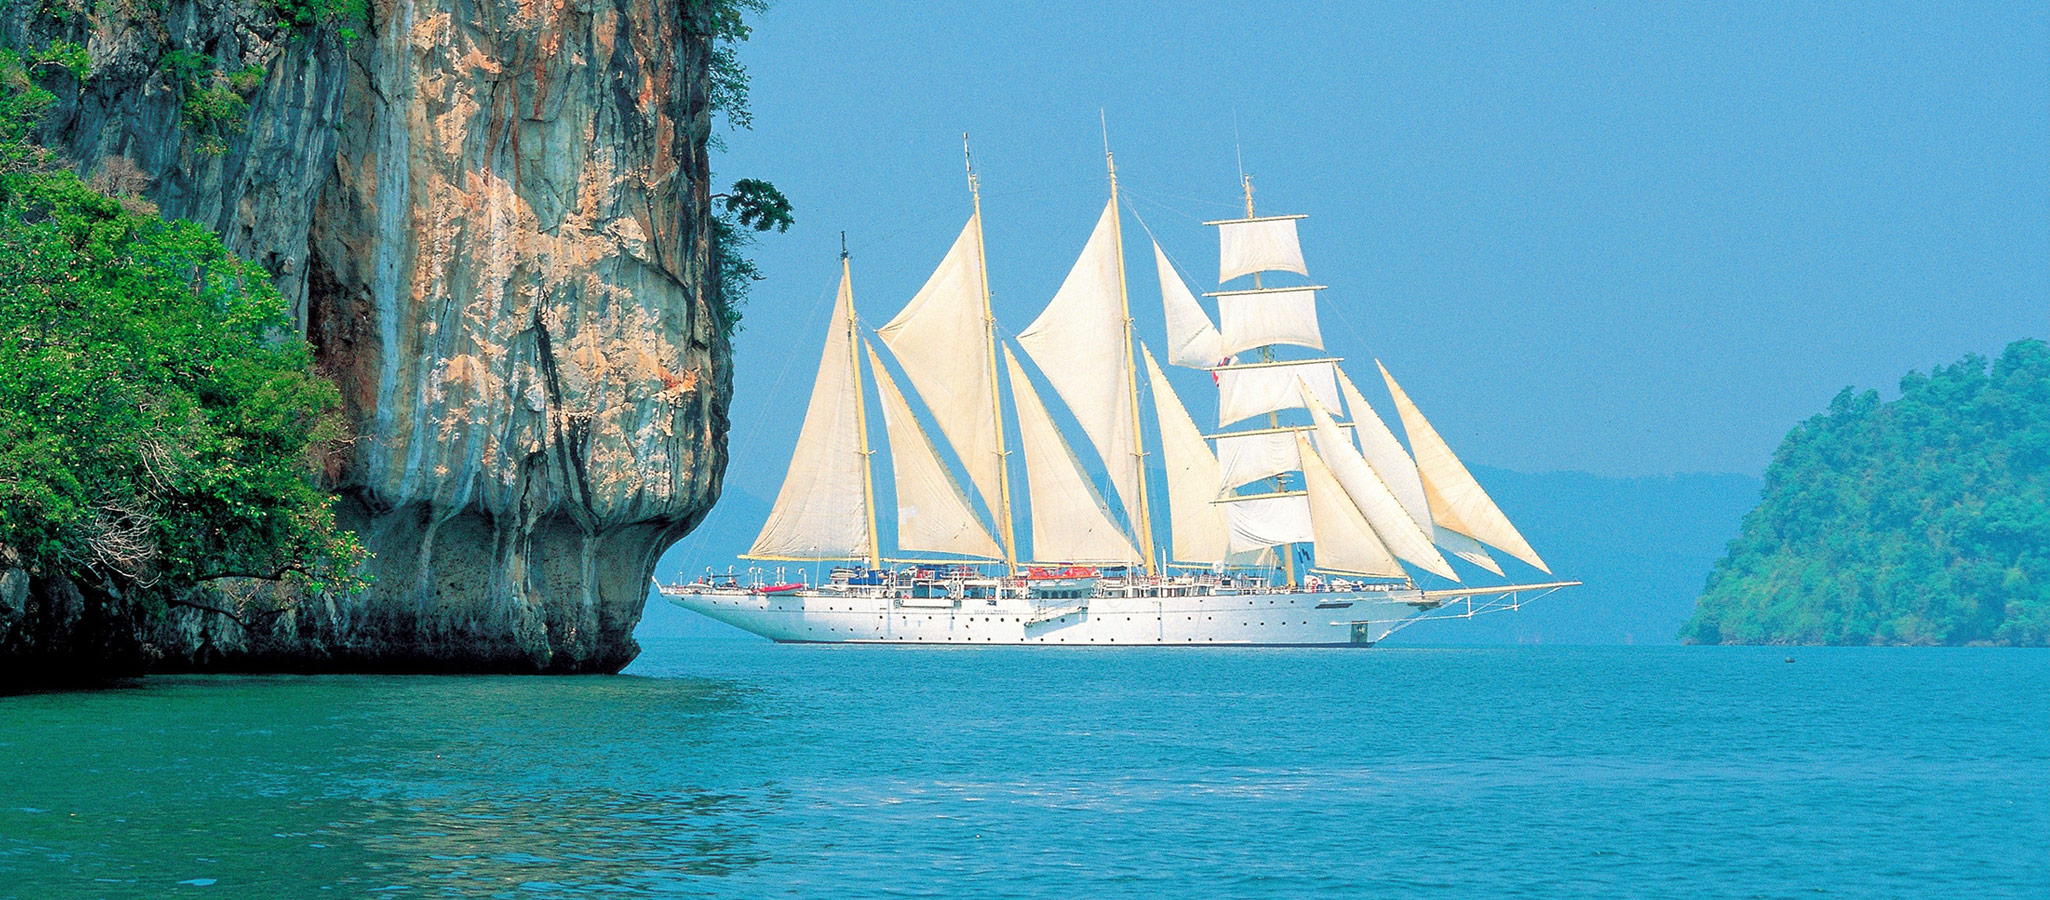 This category also includes adventurous sailing ships - an ideal choice for maritime incentives, conferences and events.